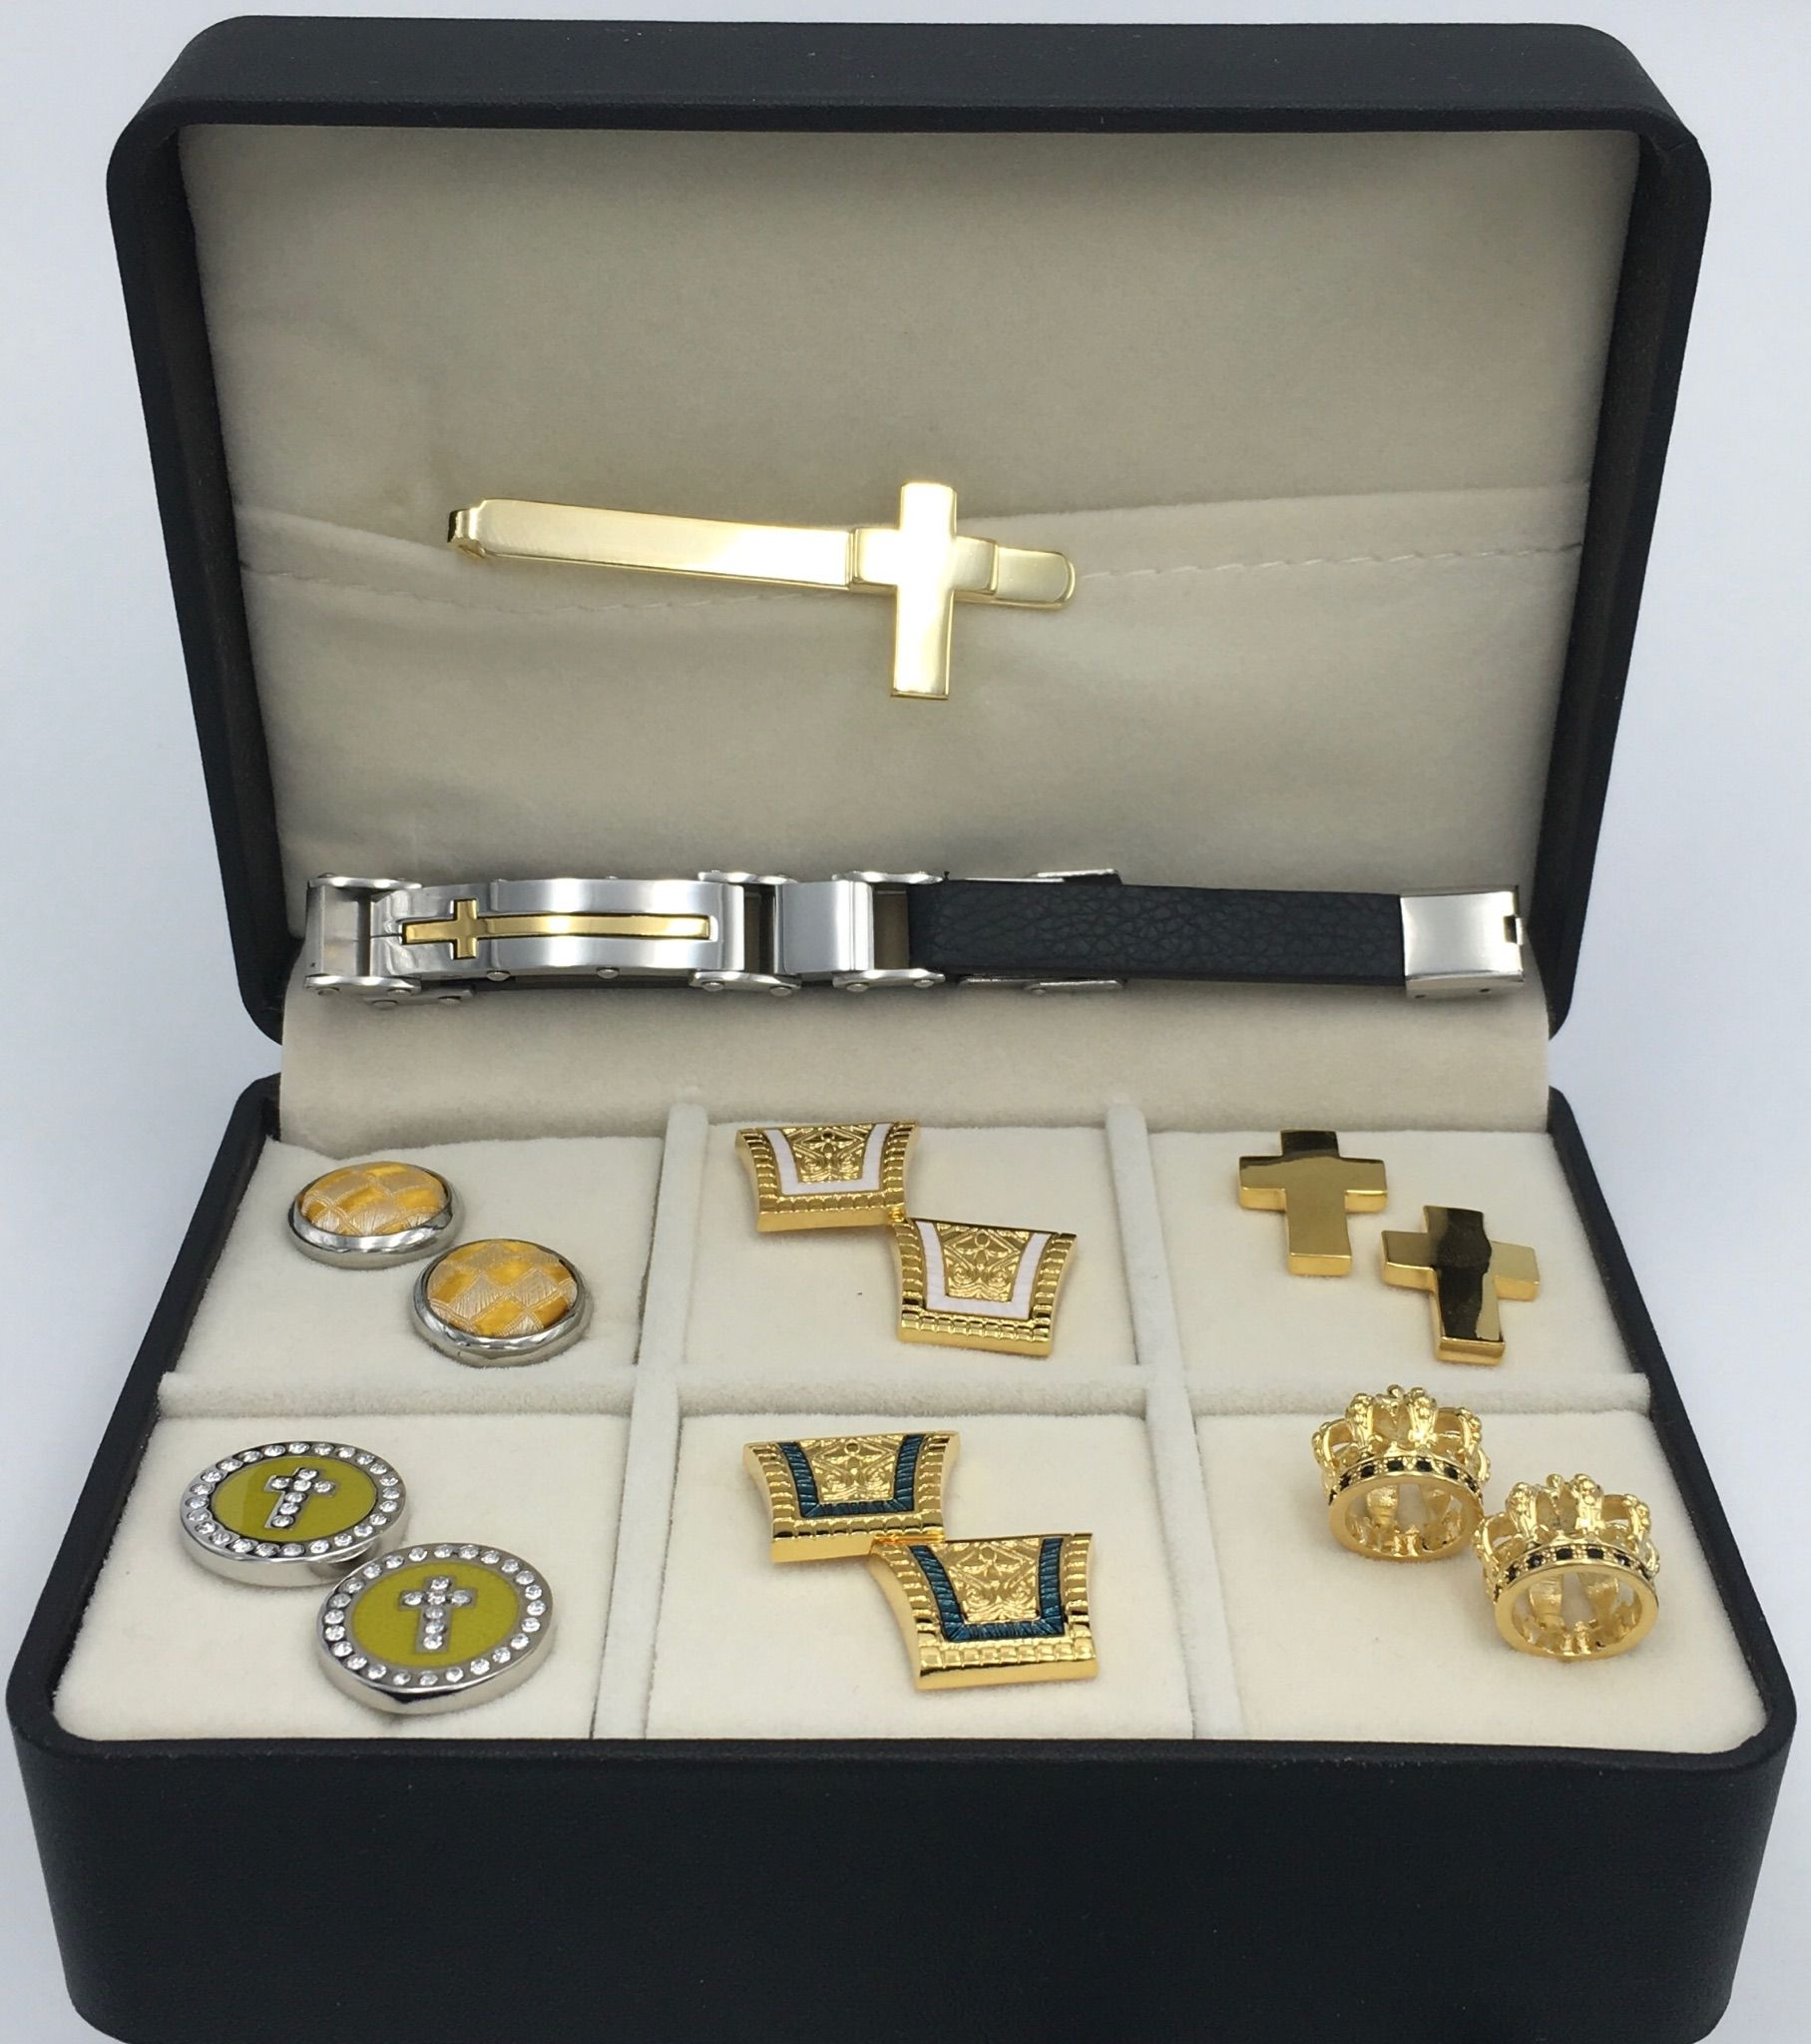 The Max Box 6 Different Pairs of Cufflinks, Tie Bar and Clergy Bracelet